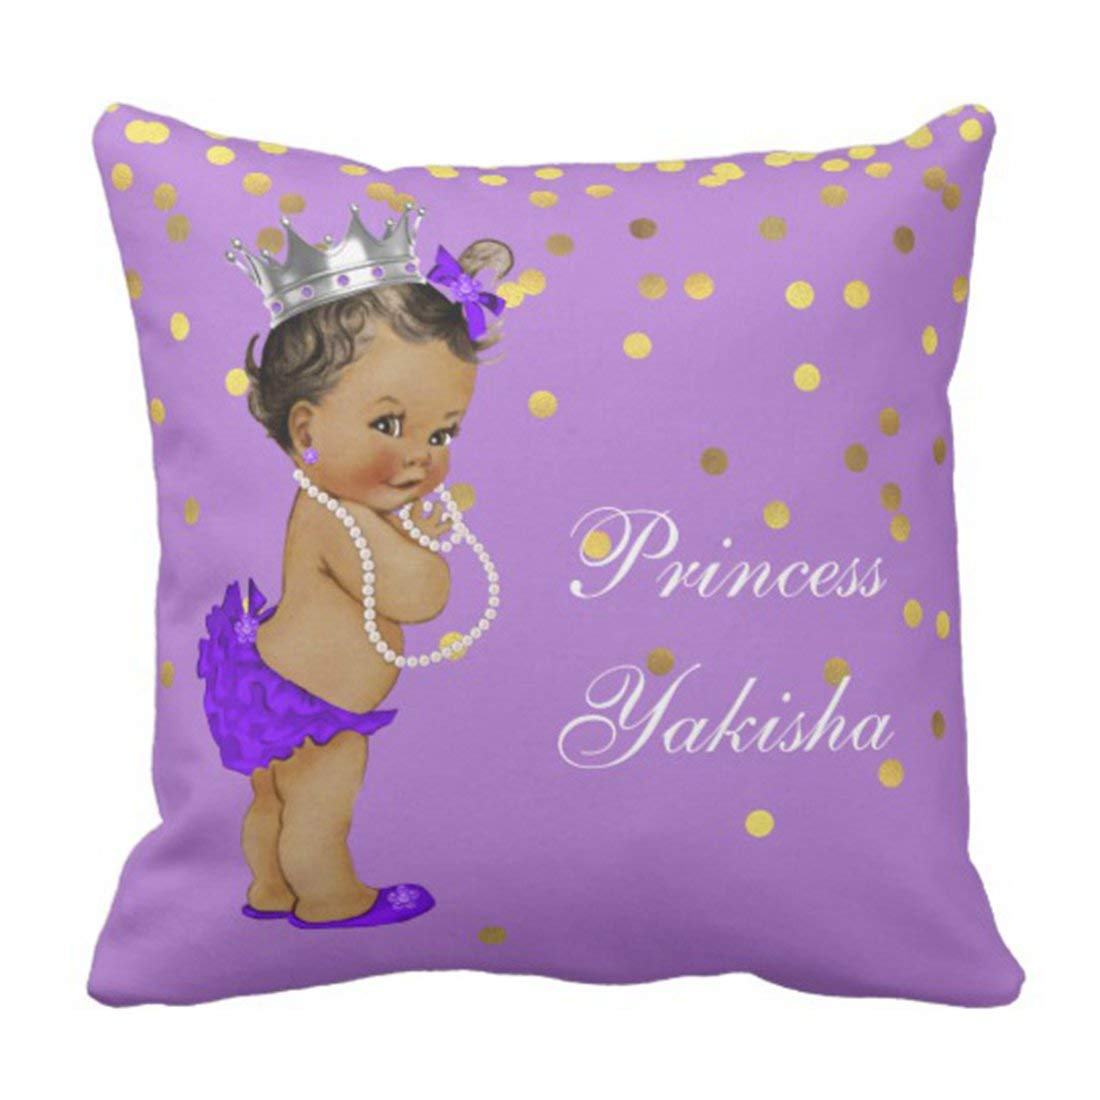 BPBOP Silver African Purple Vintage Ethnic Princess Baby Gold Cute Crowns Pillowcase Cushion Cover 16x16 inches